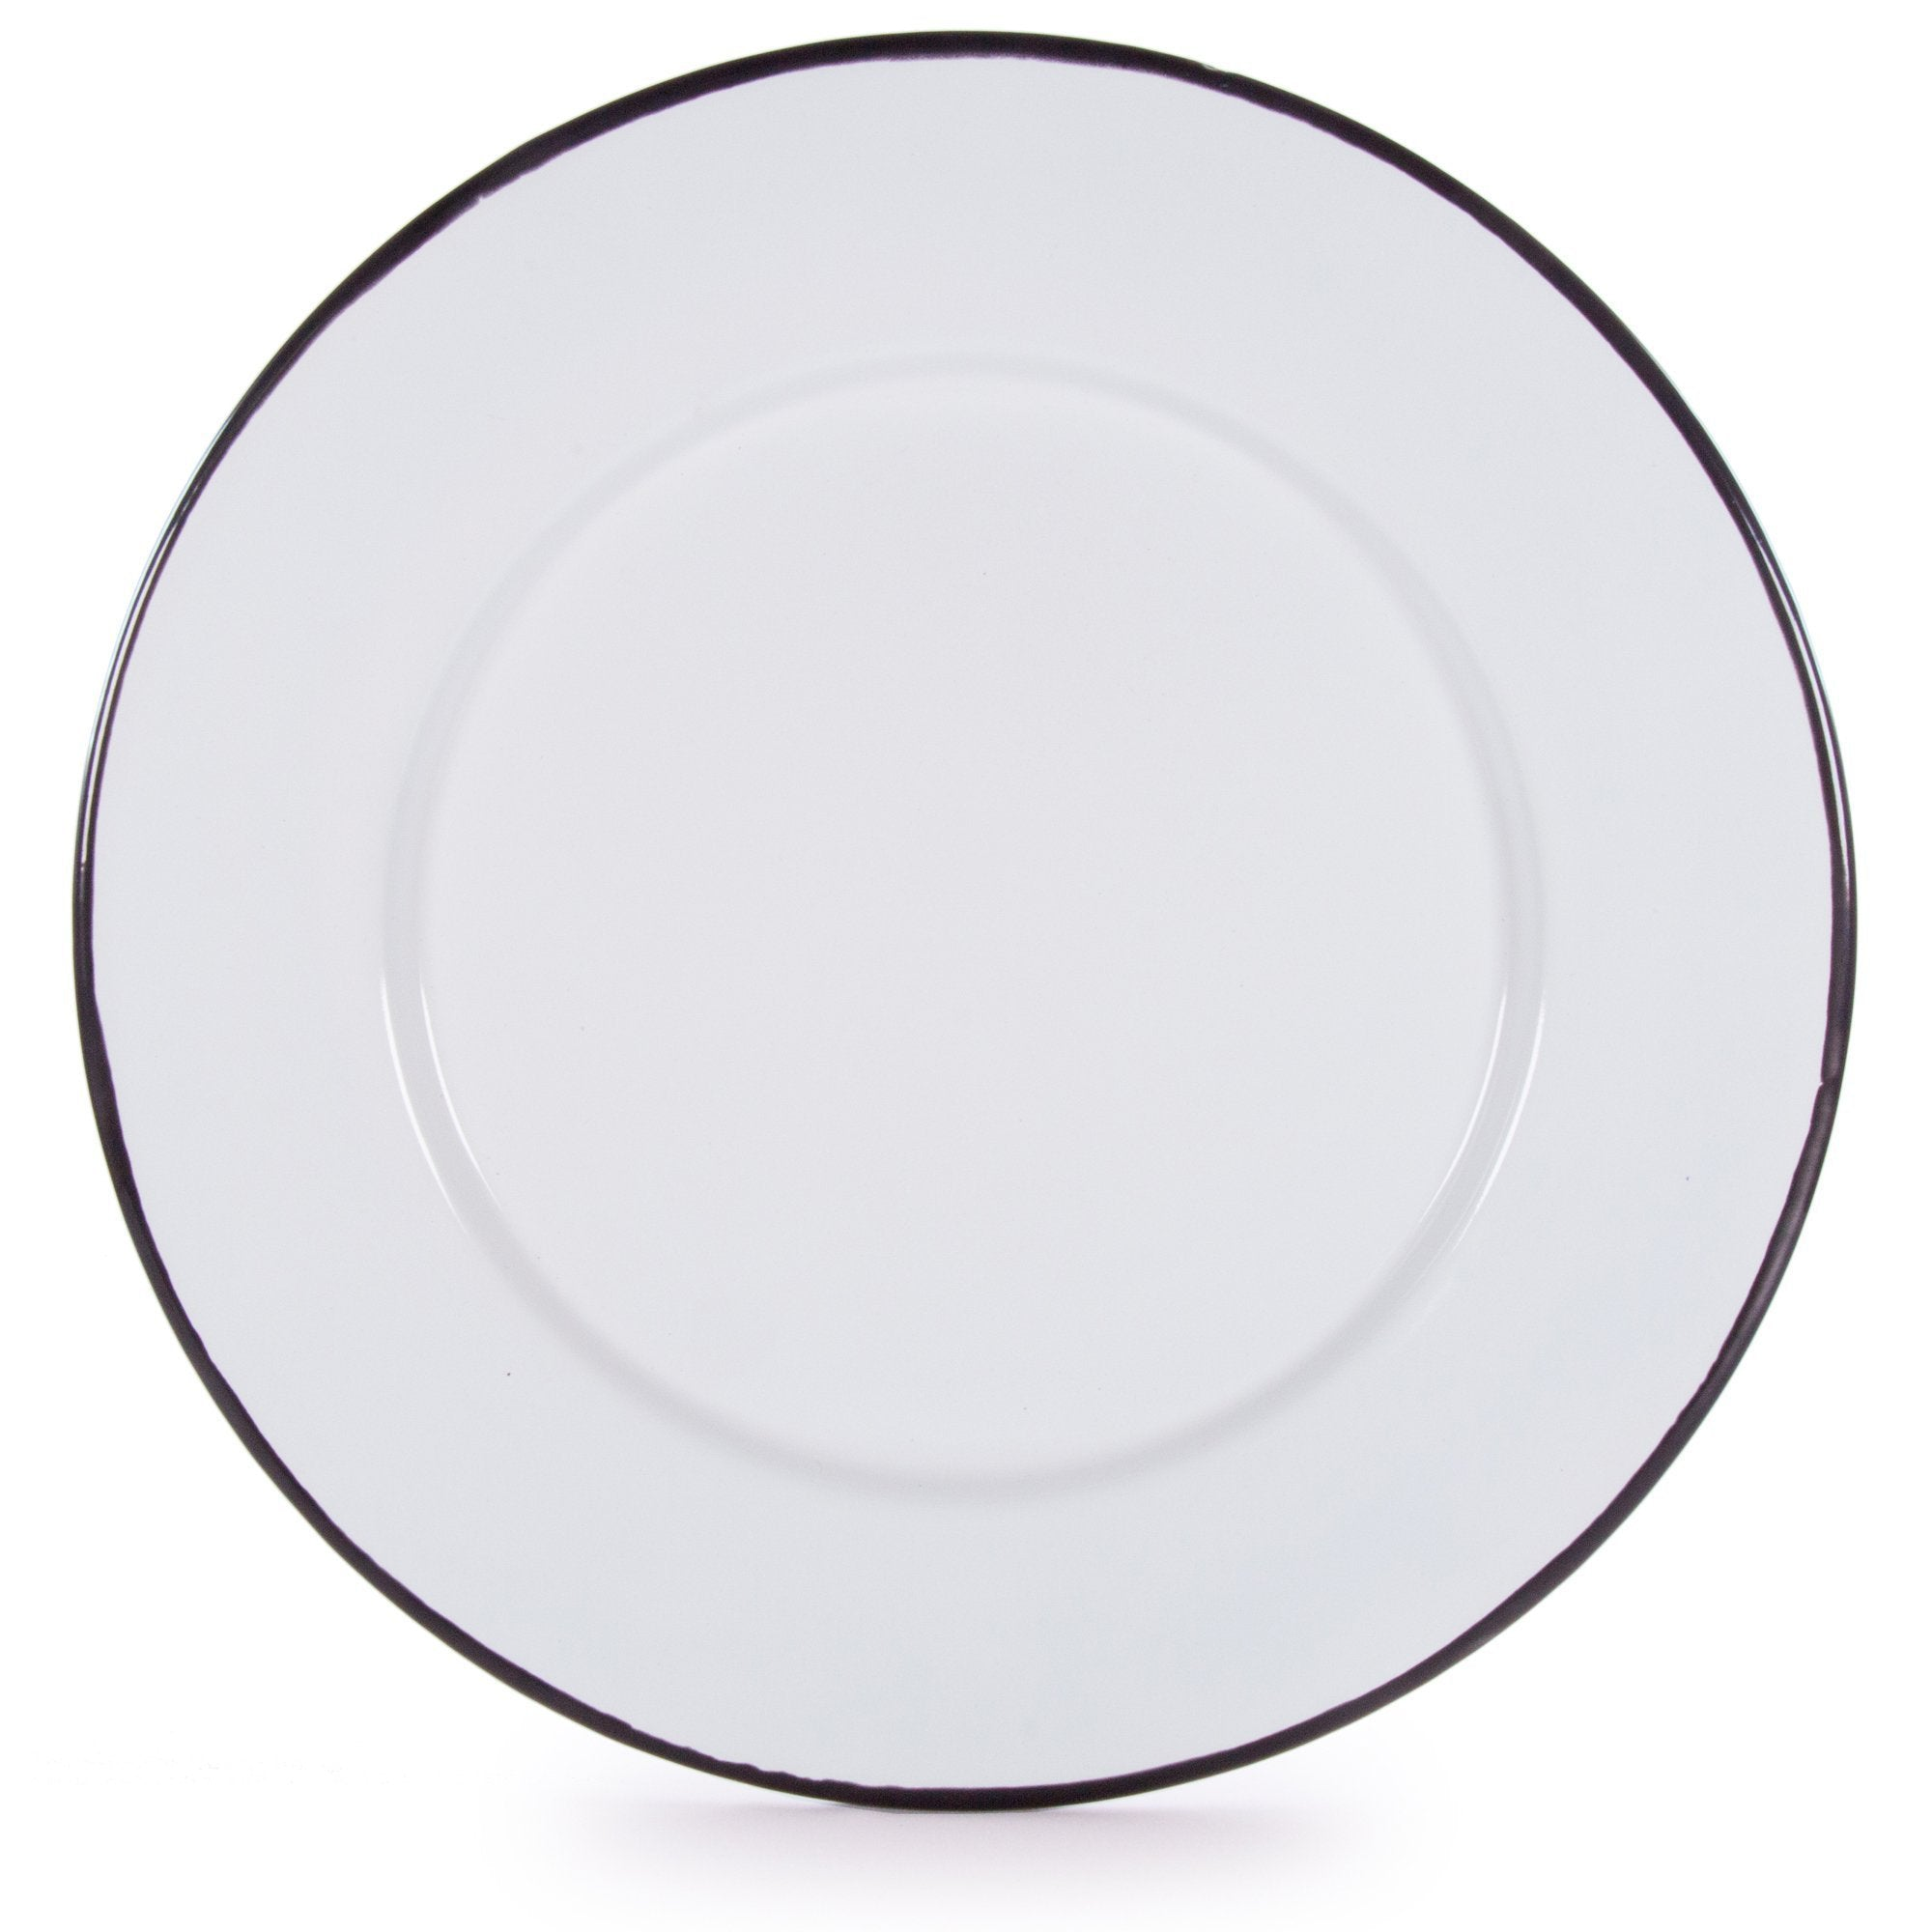 RBW91 - Glampware  Plates - White with Black Trim  - Set of 4